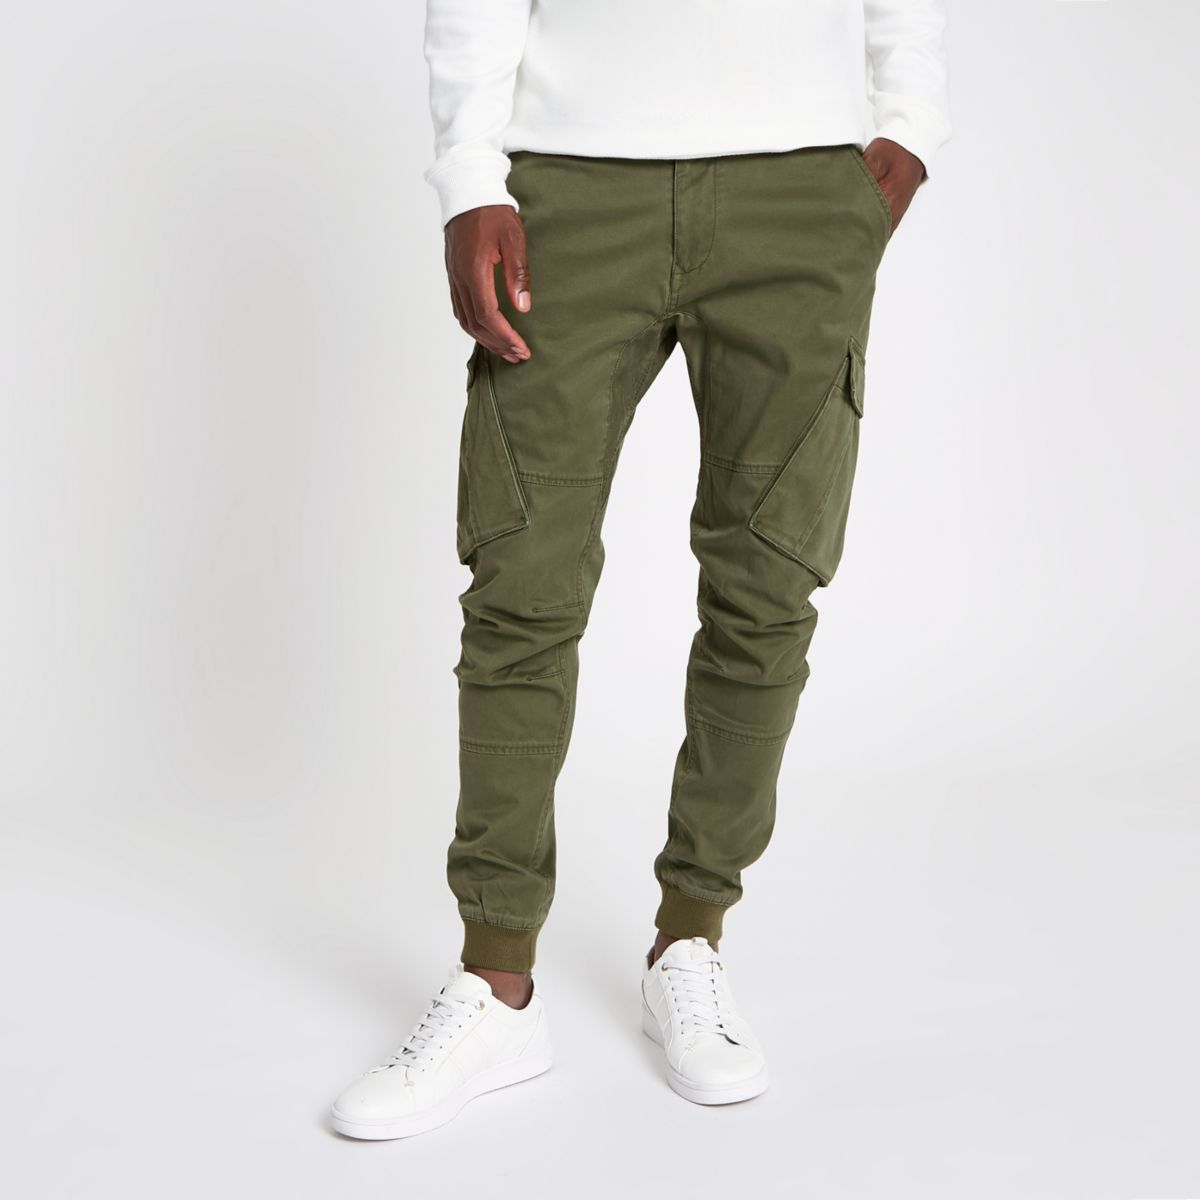 Khaki green tapered cargo trousers